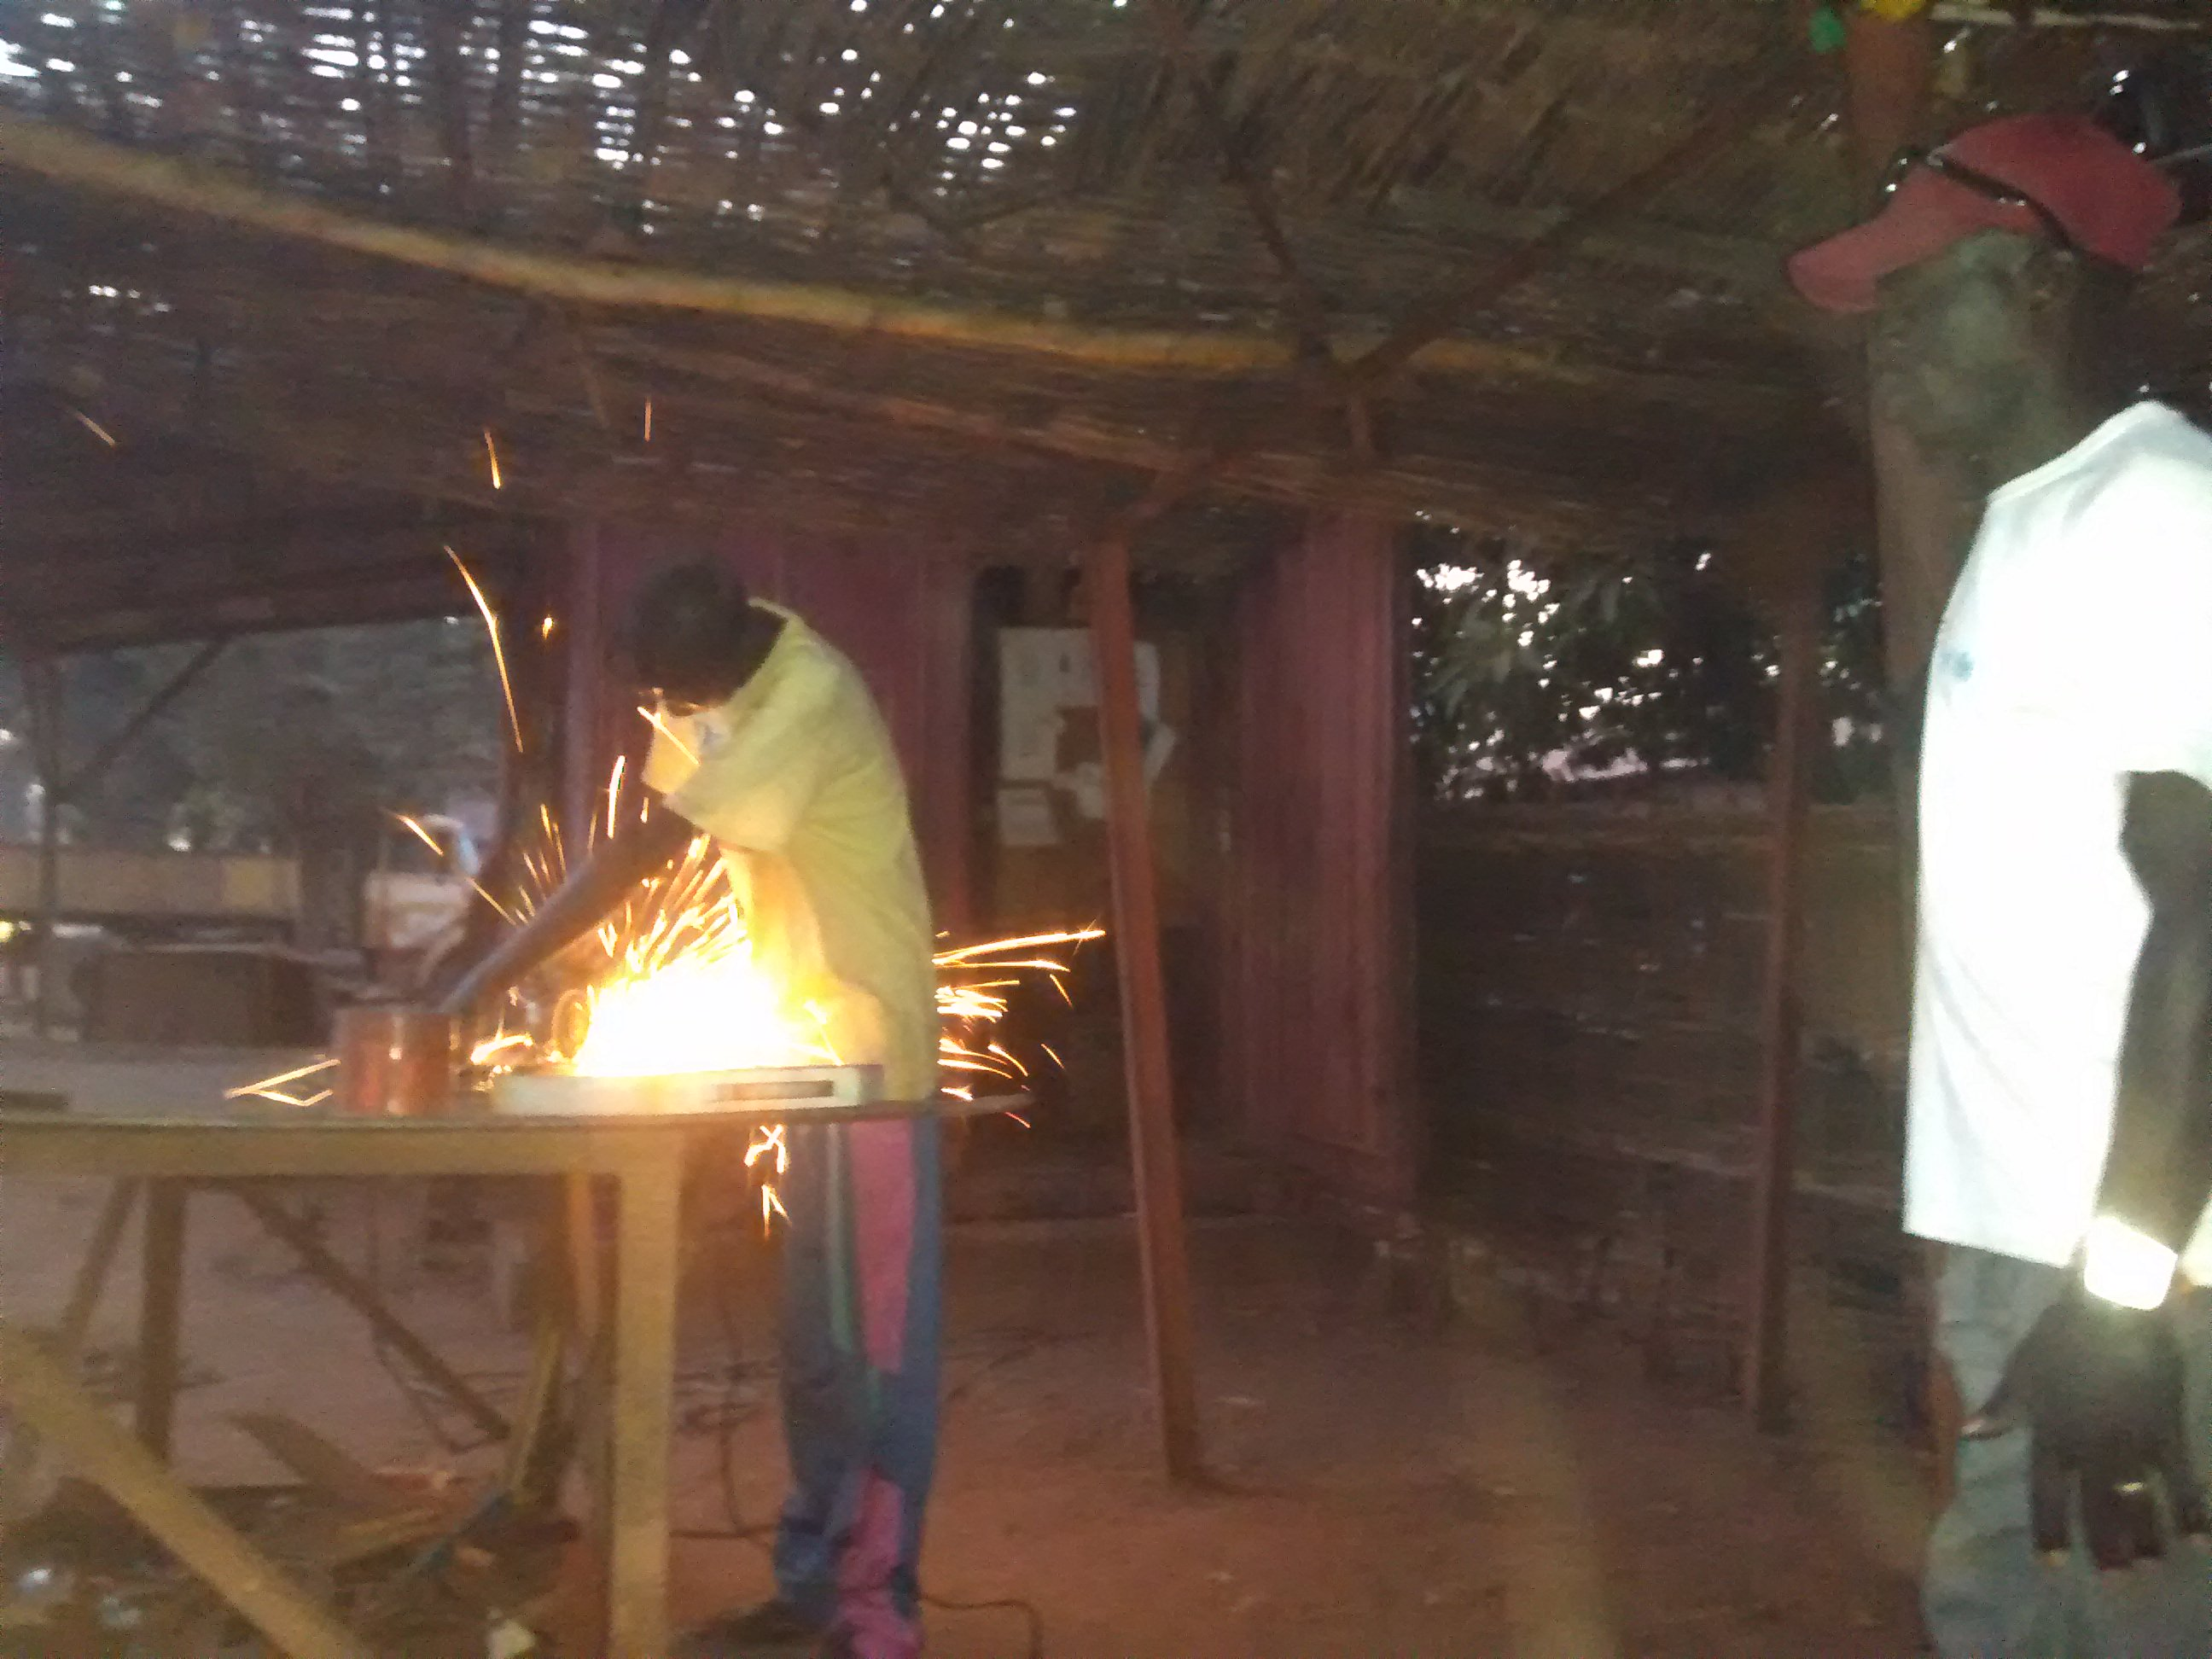 Blacksmith preparing patio mould for Couchsurfing friend, Lamine, in Sedhiou, Senegal.